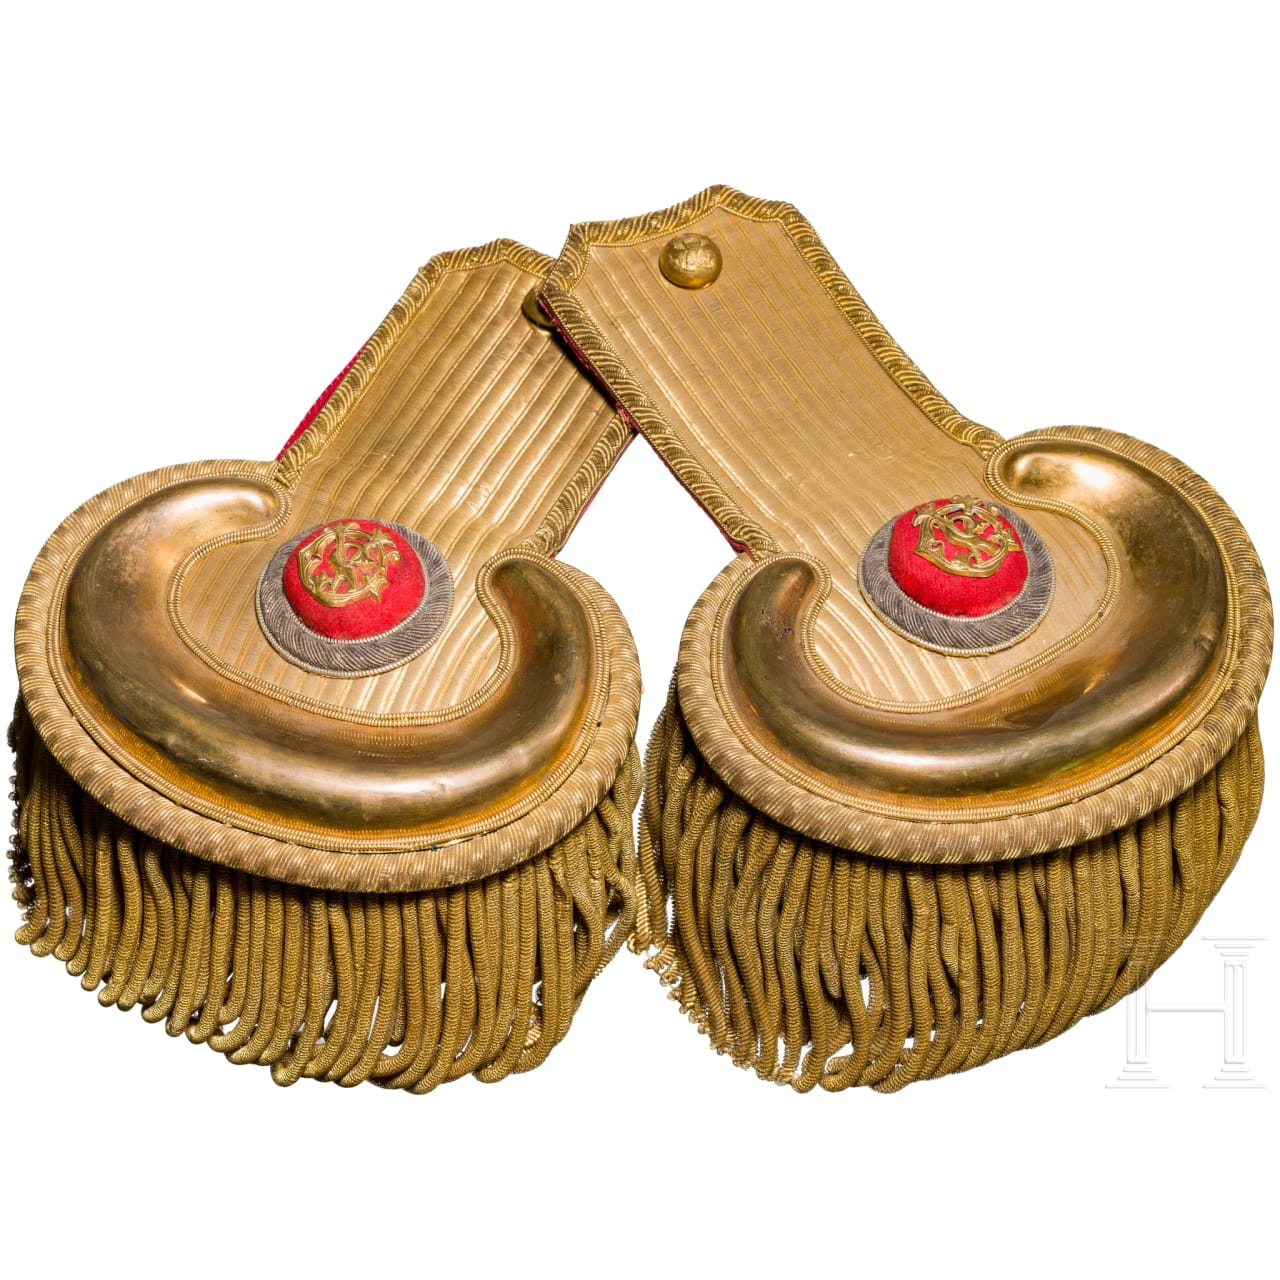 A pair of U.S. Army officer's epaulettes, 2nd half of the 19th century